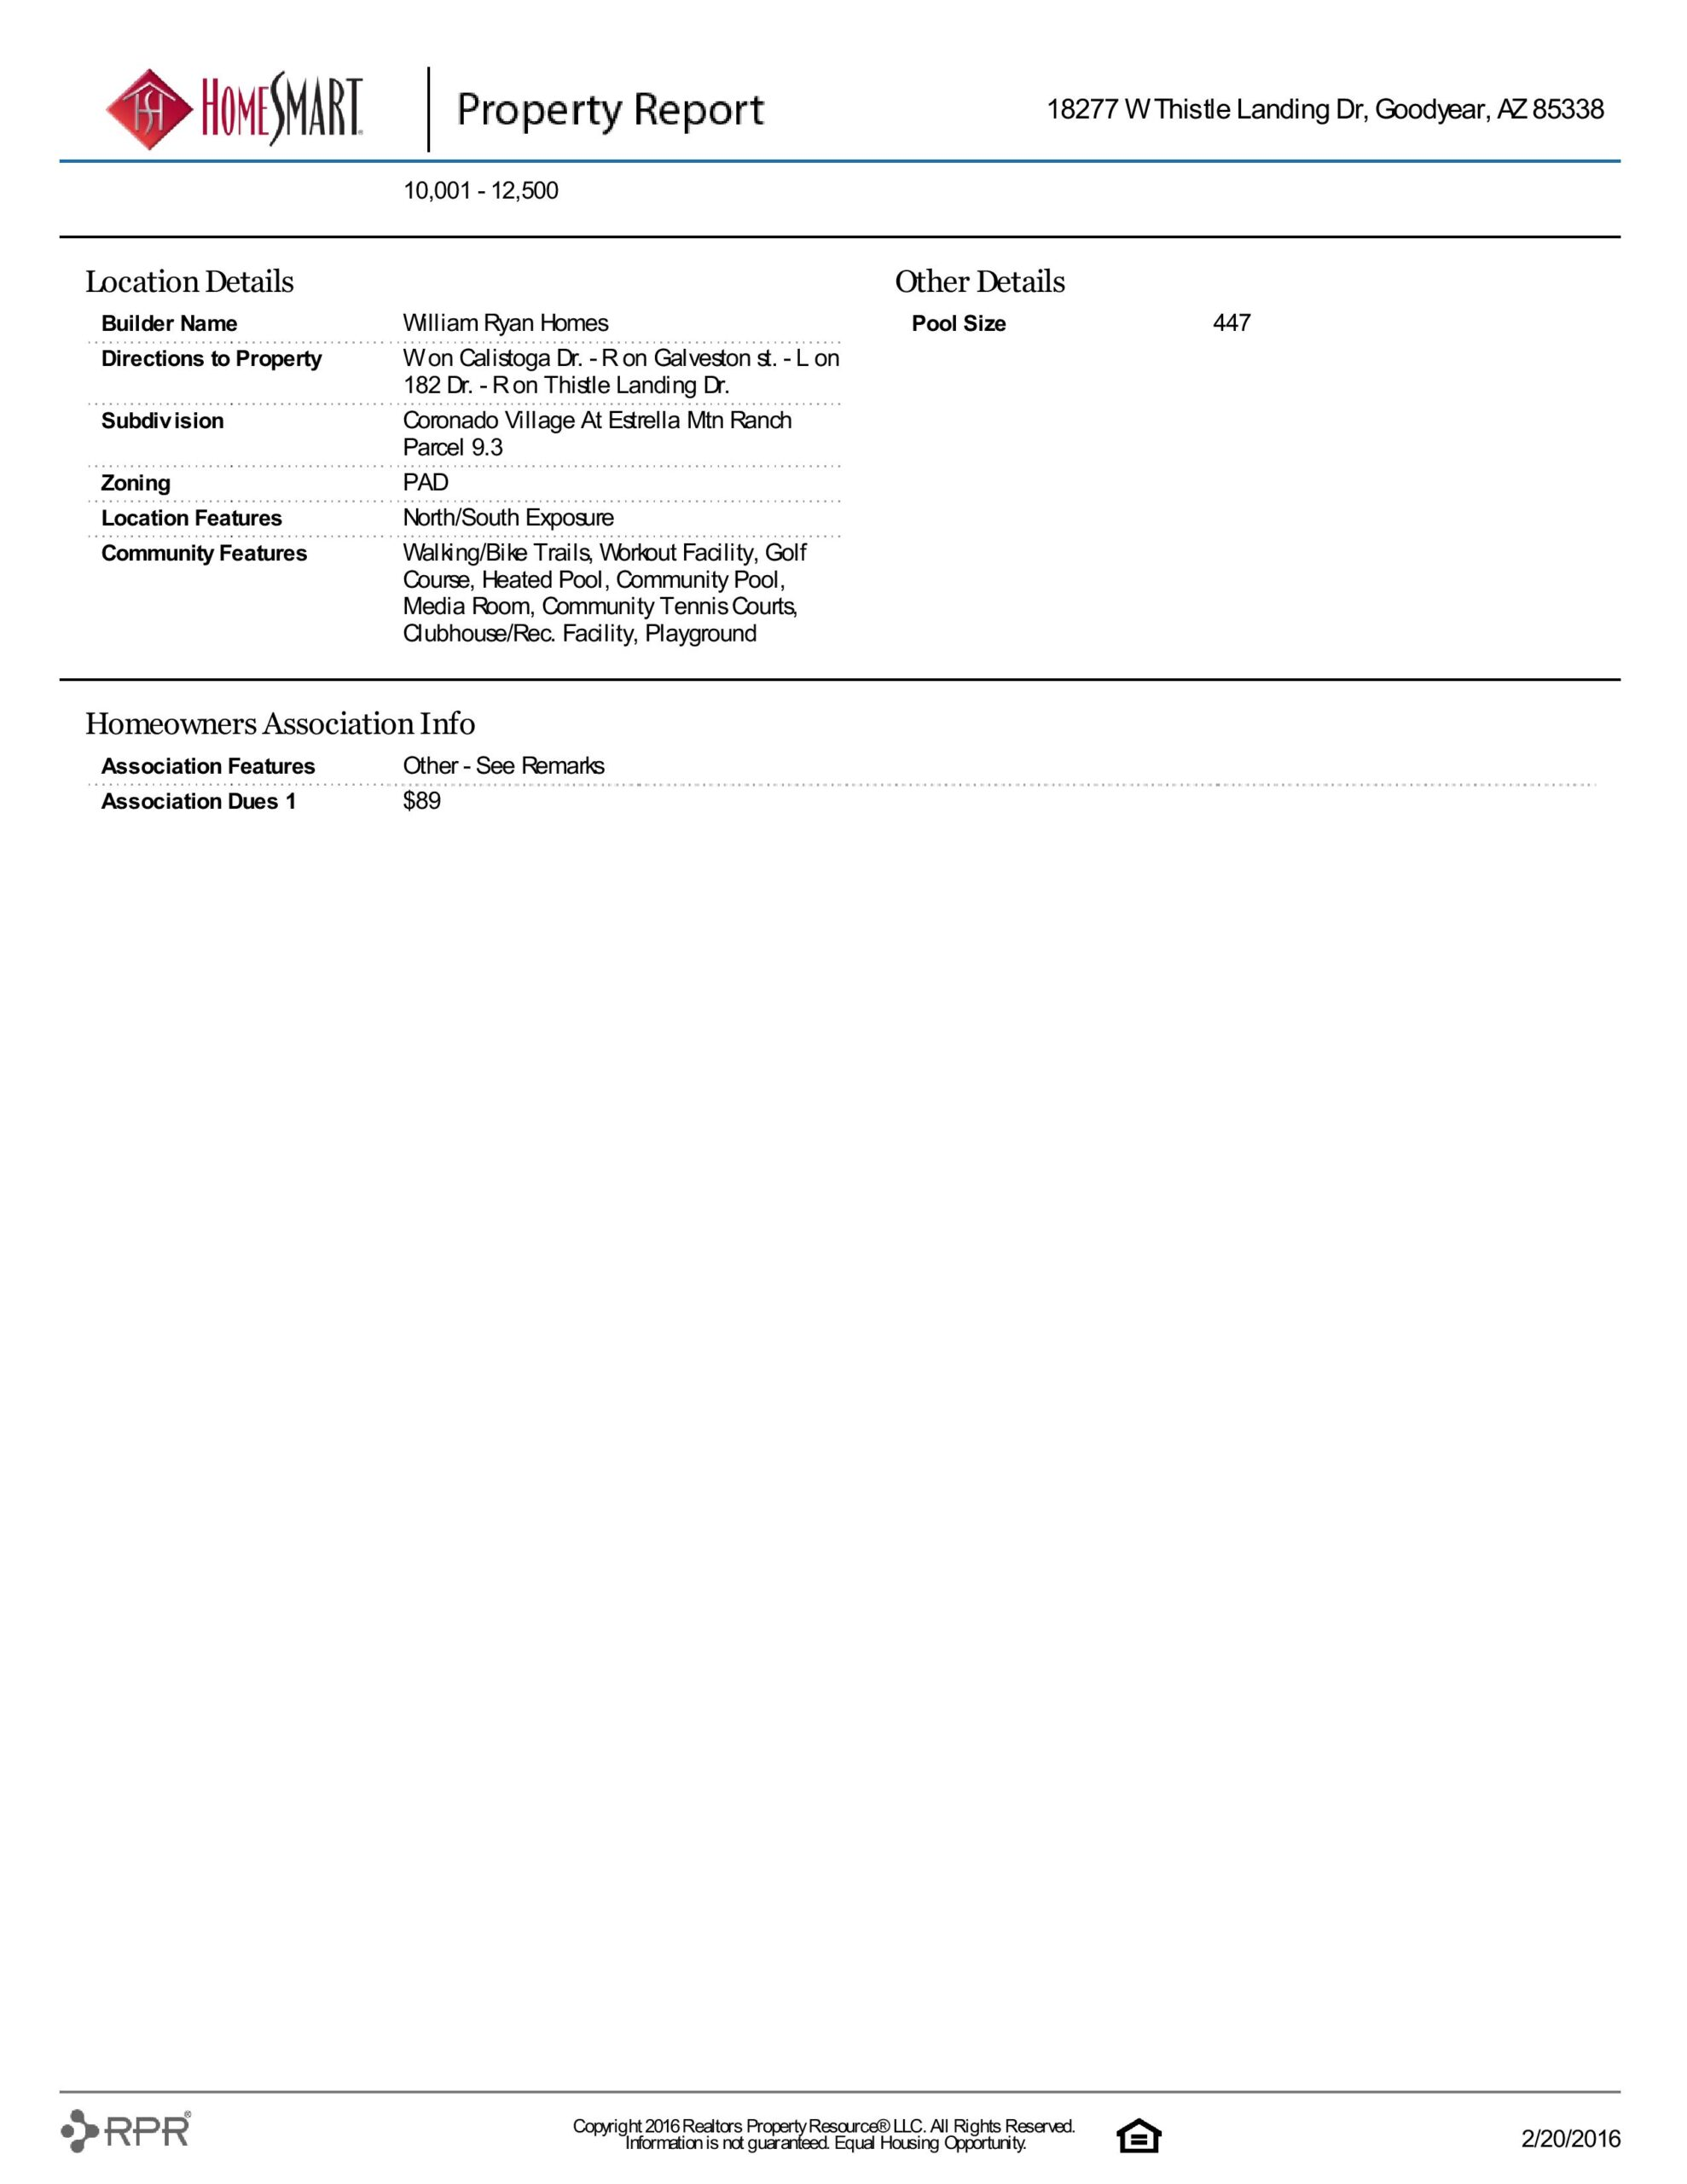 18277 W THISTLE LANDING DR PROPERTY REPORT-page-005